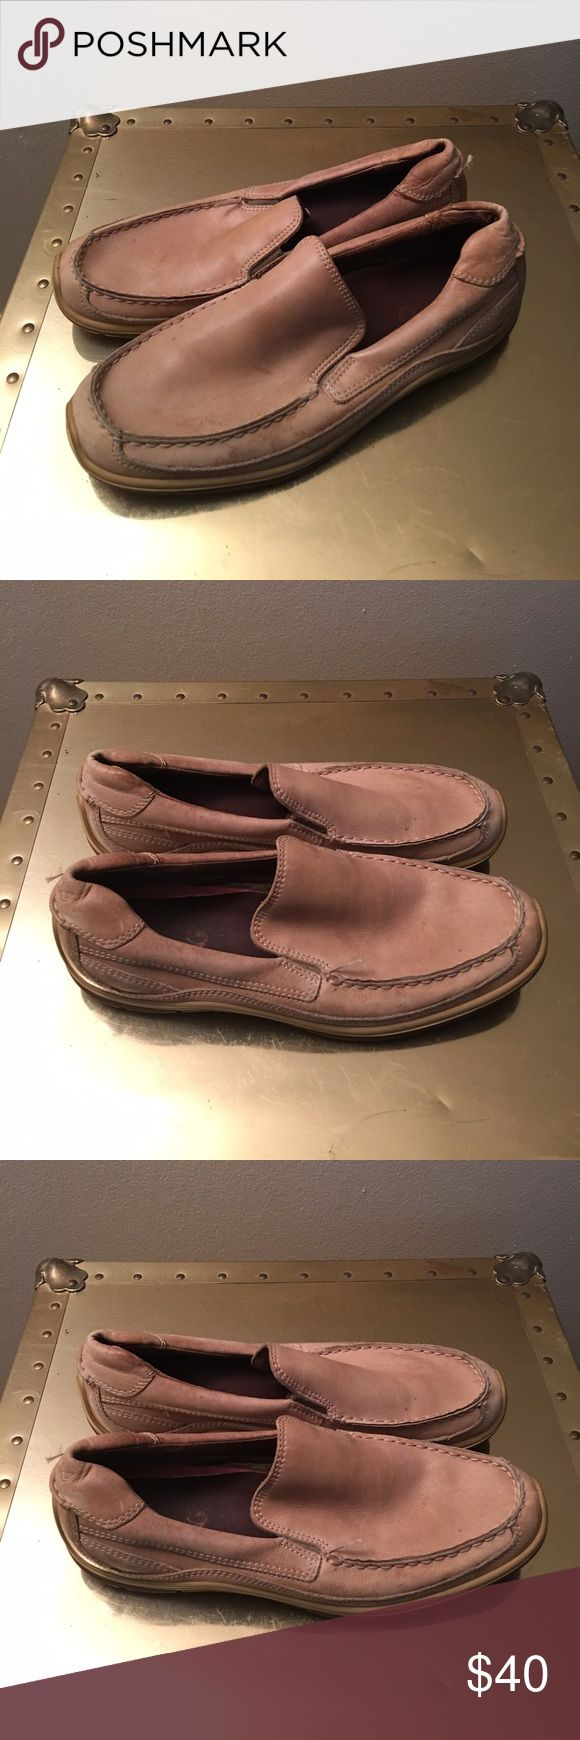 Men's Ecco shoes Size 10. Minor scuffs do to wear. Tan casual loafers. Very comfortable and has many more wears in them. Ecco Shoes